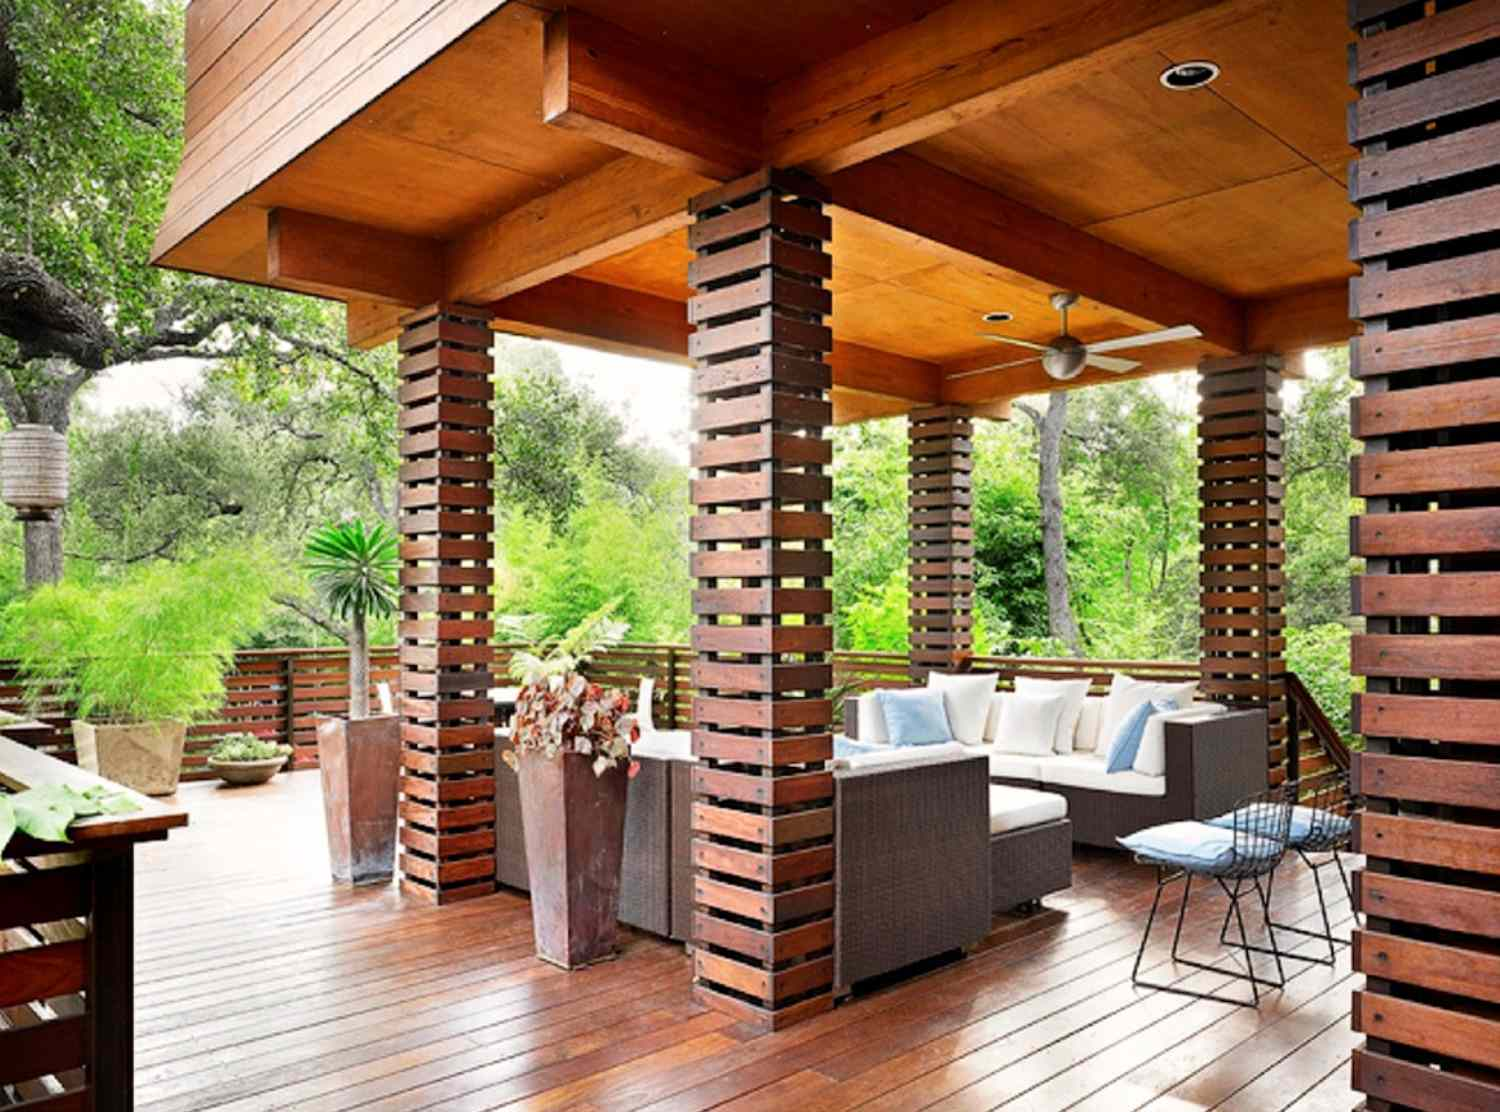 Bali-inspired covered deck